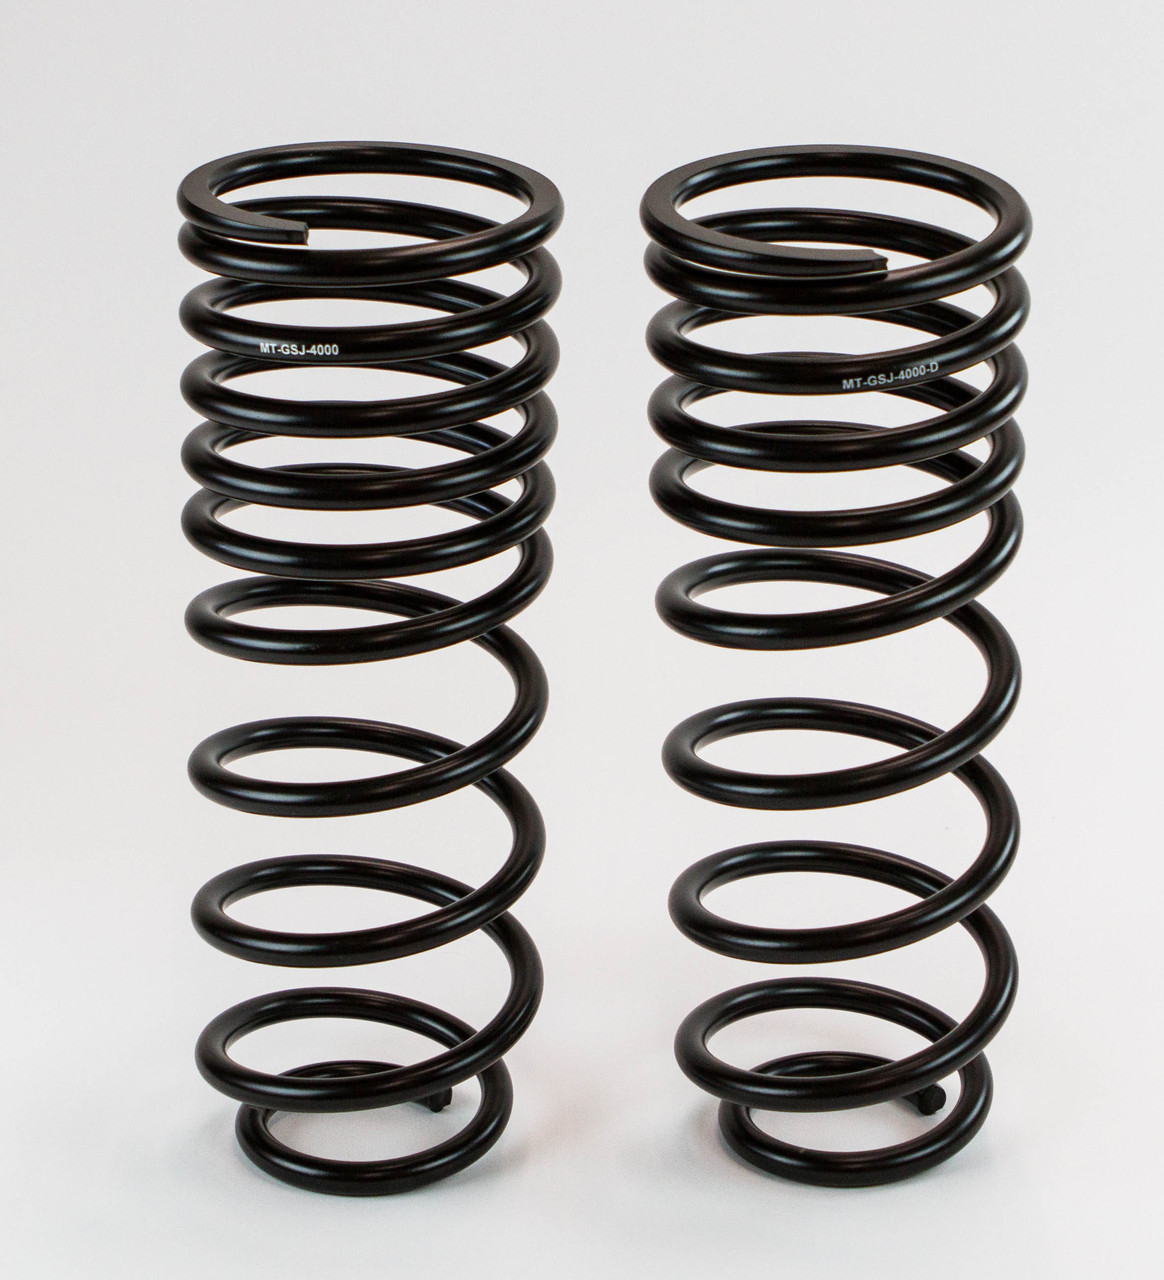 Metal-Tech FJ/4Runner Rear Long Travel Coil Springs - Medium